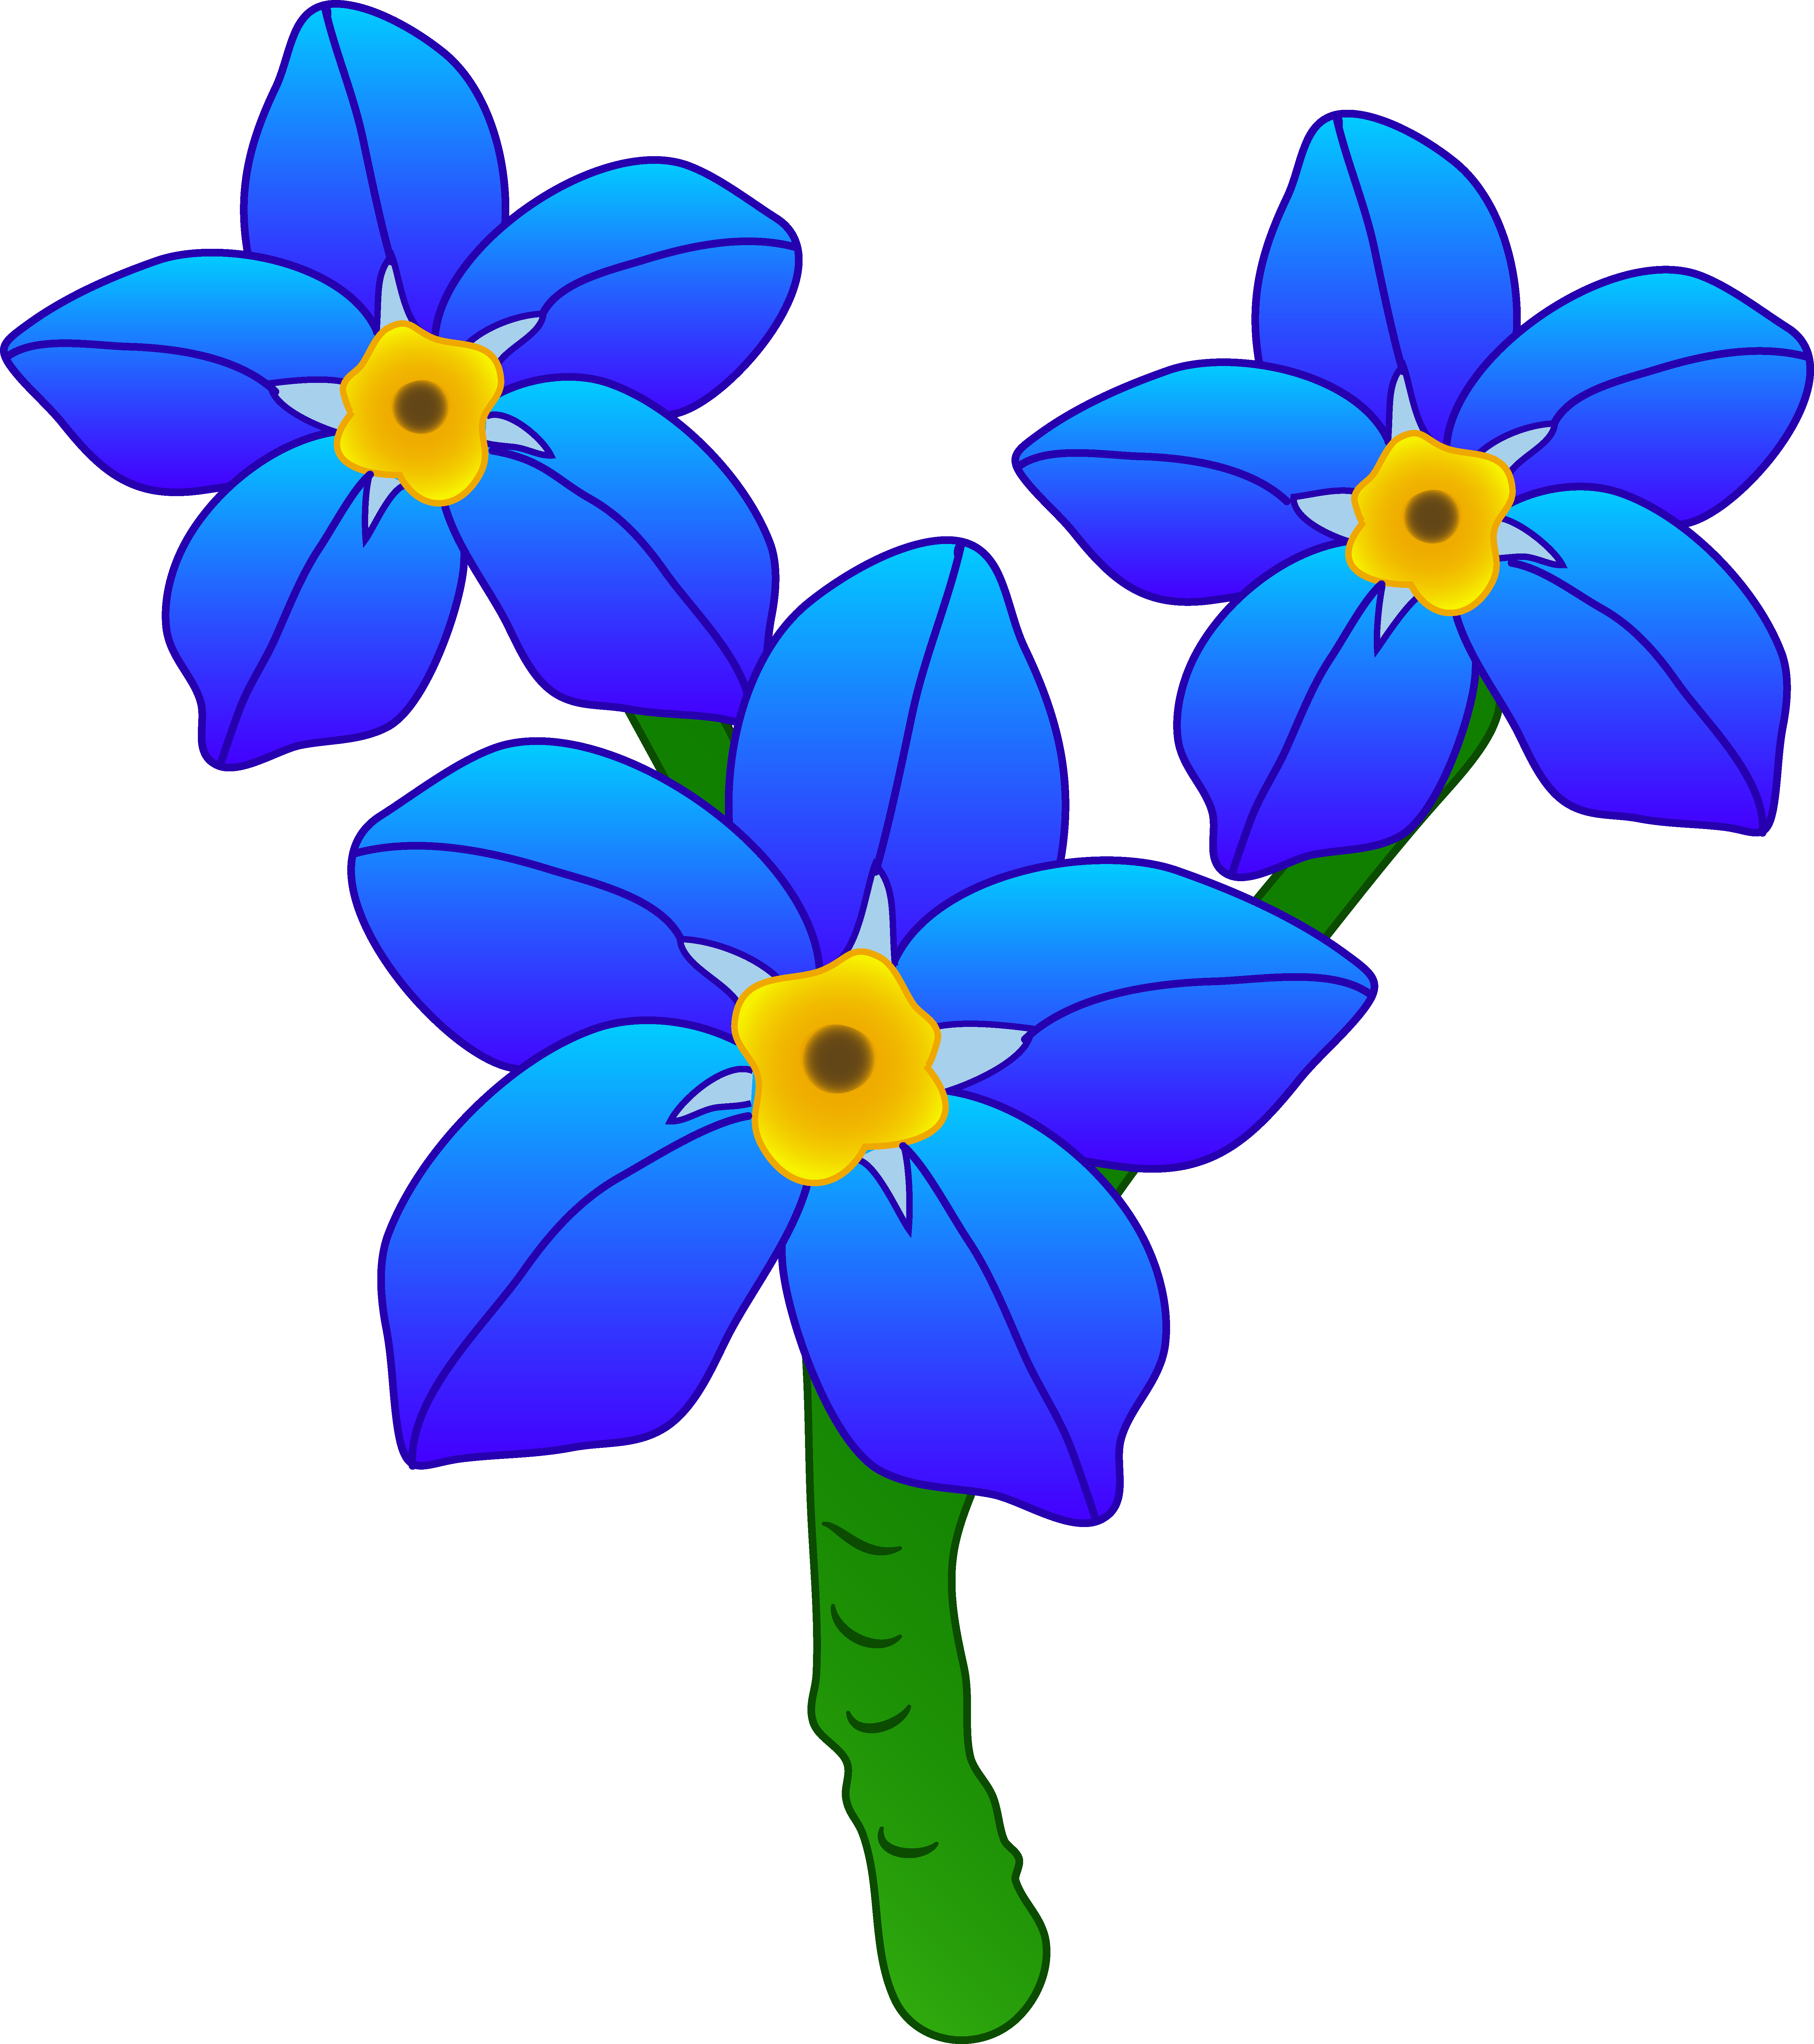 Forget me not flower png. Three flowers free clip